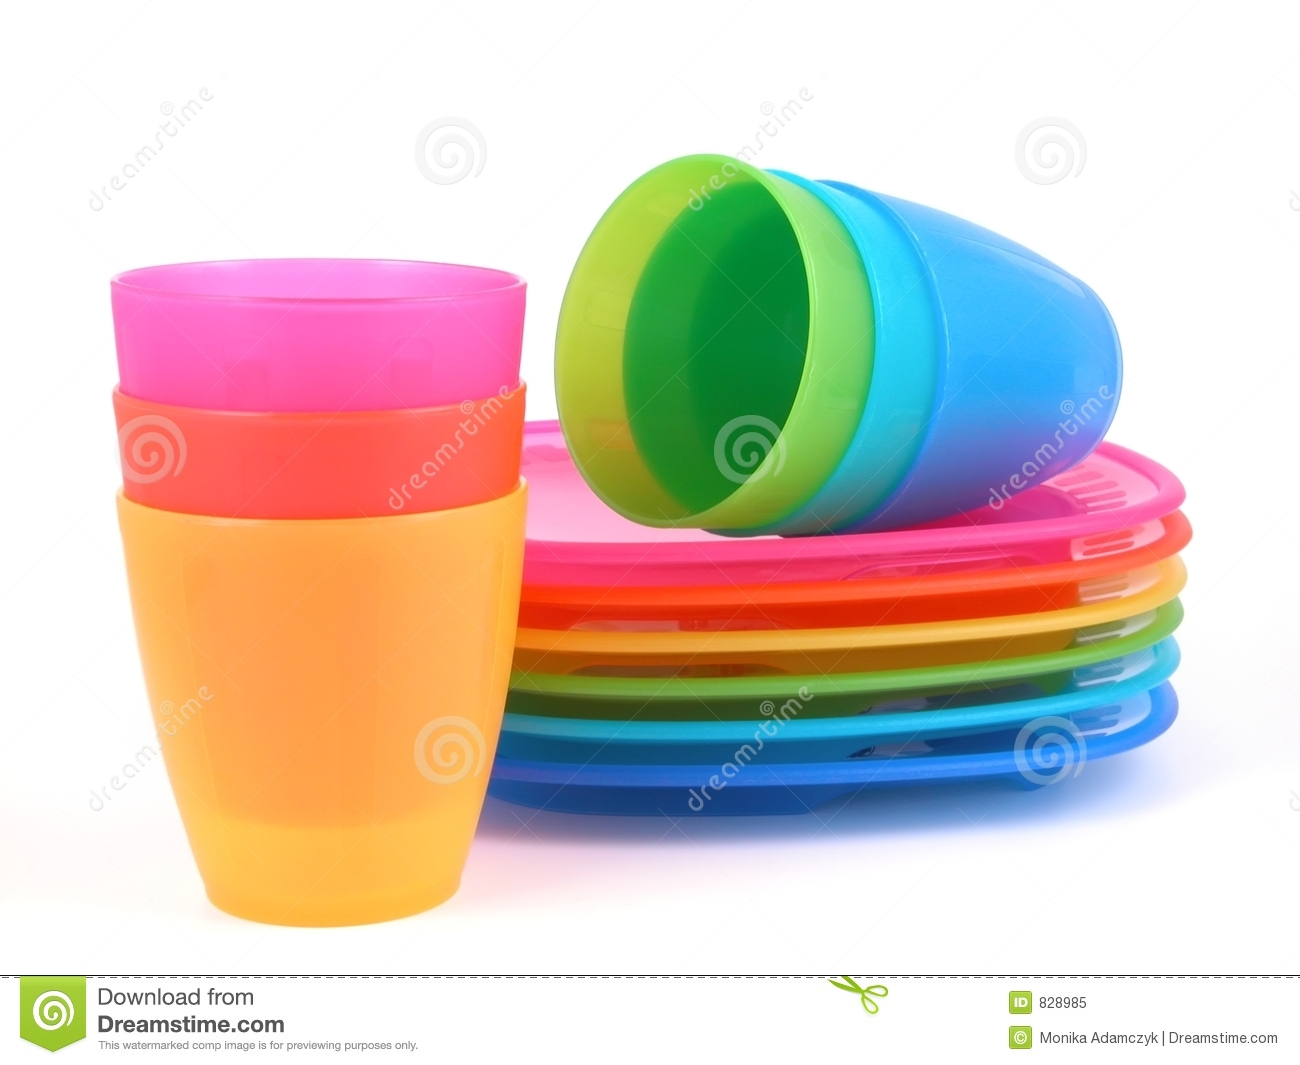 Plastic cups and plates stock image image of drinks - Cups and kids ...